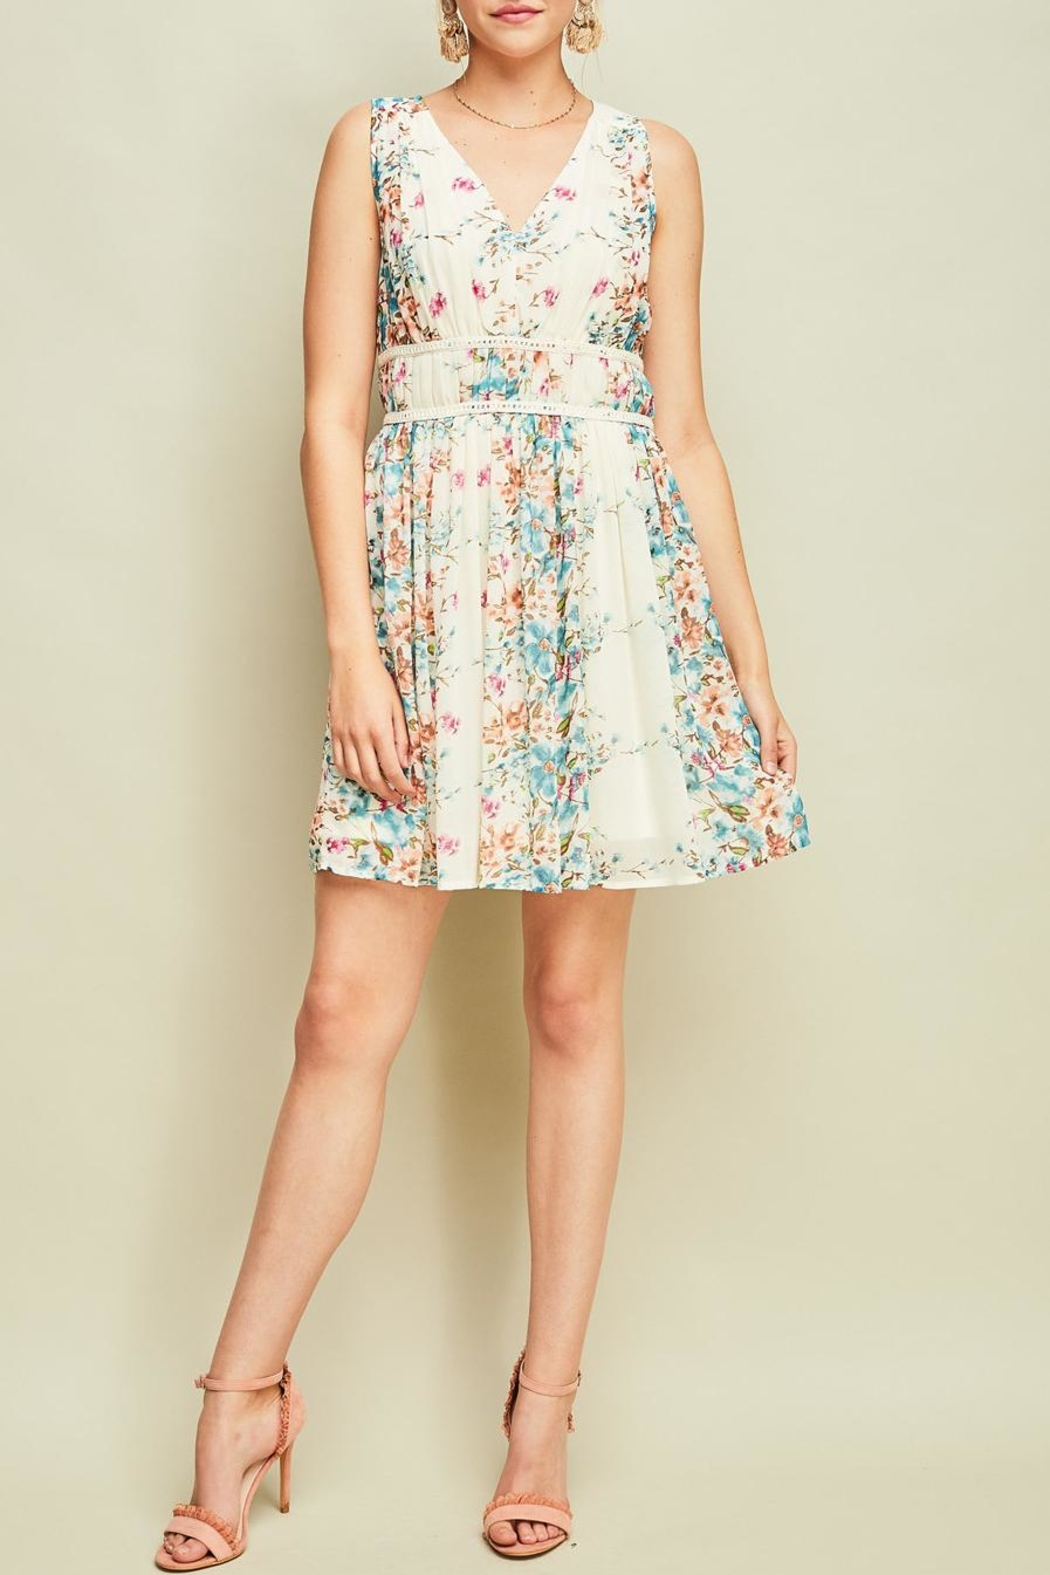 Entro Pleated Floral Dress - Main Image